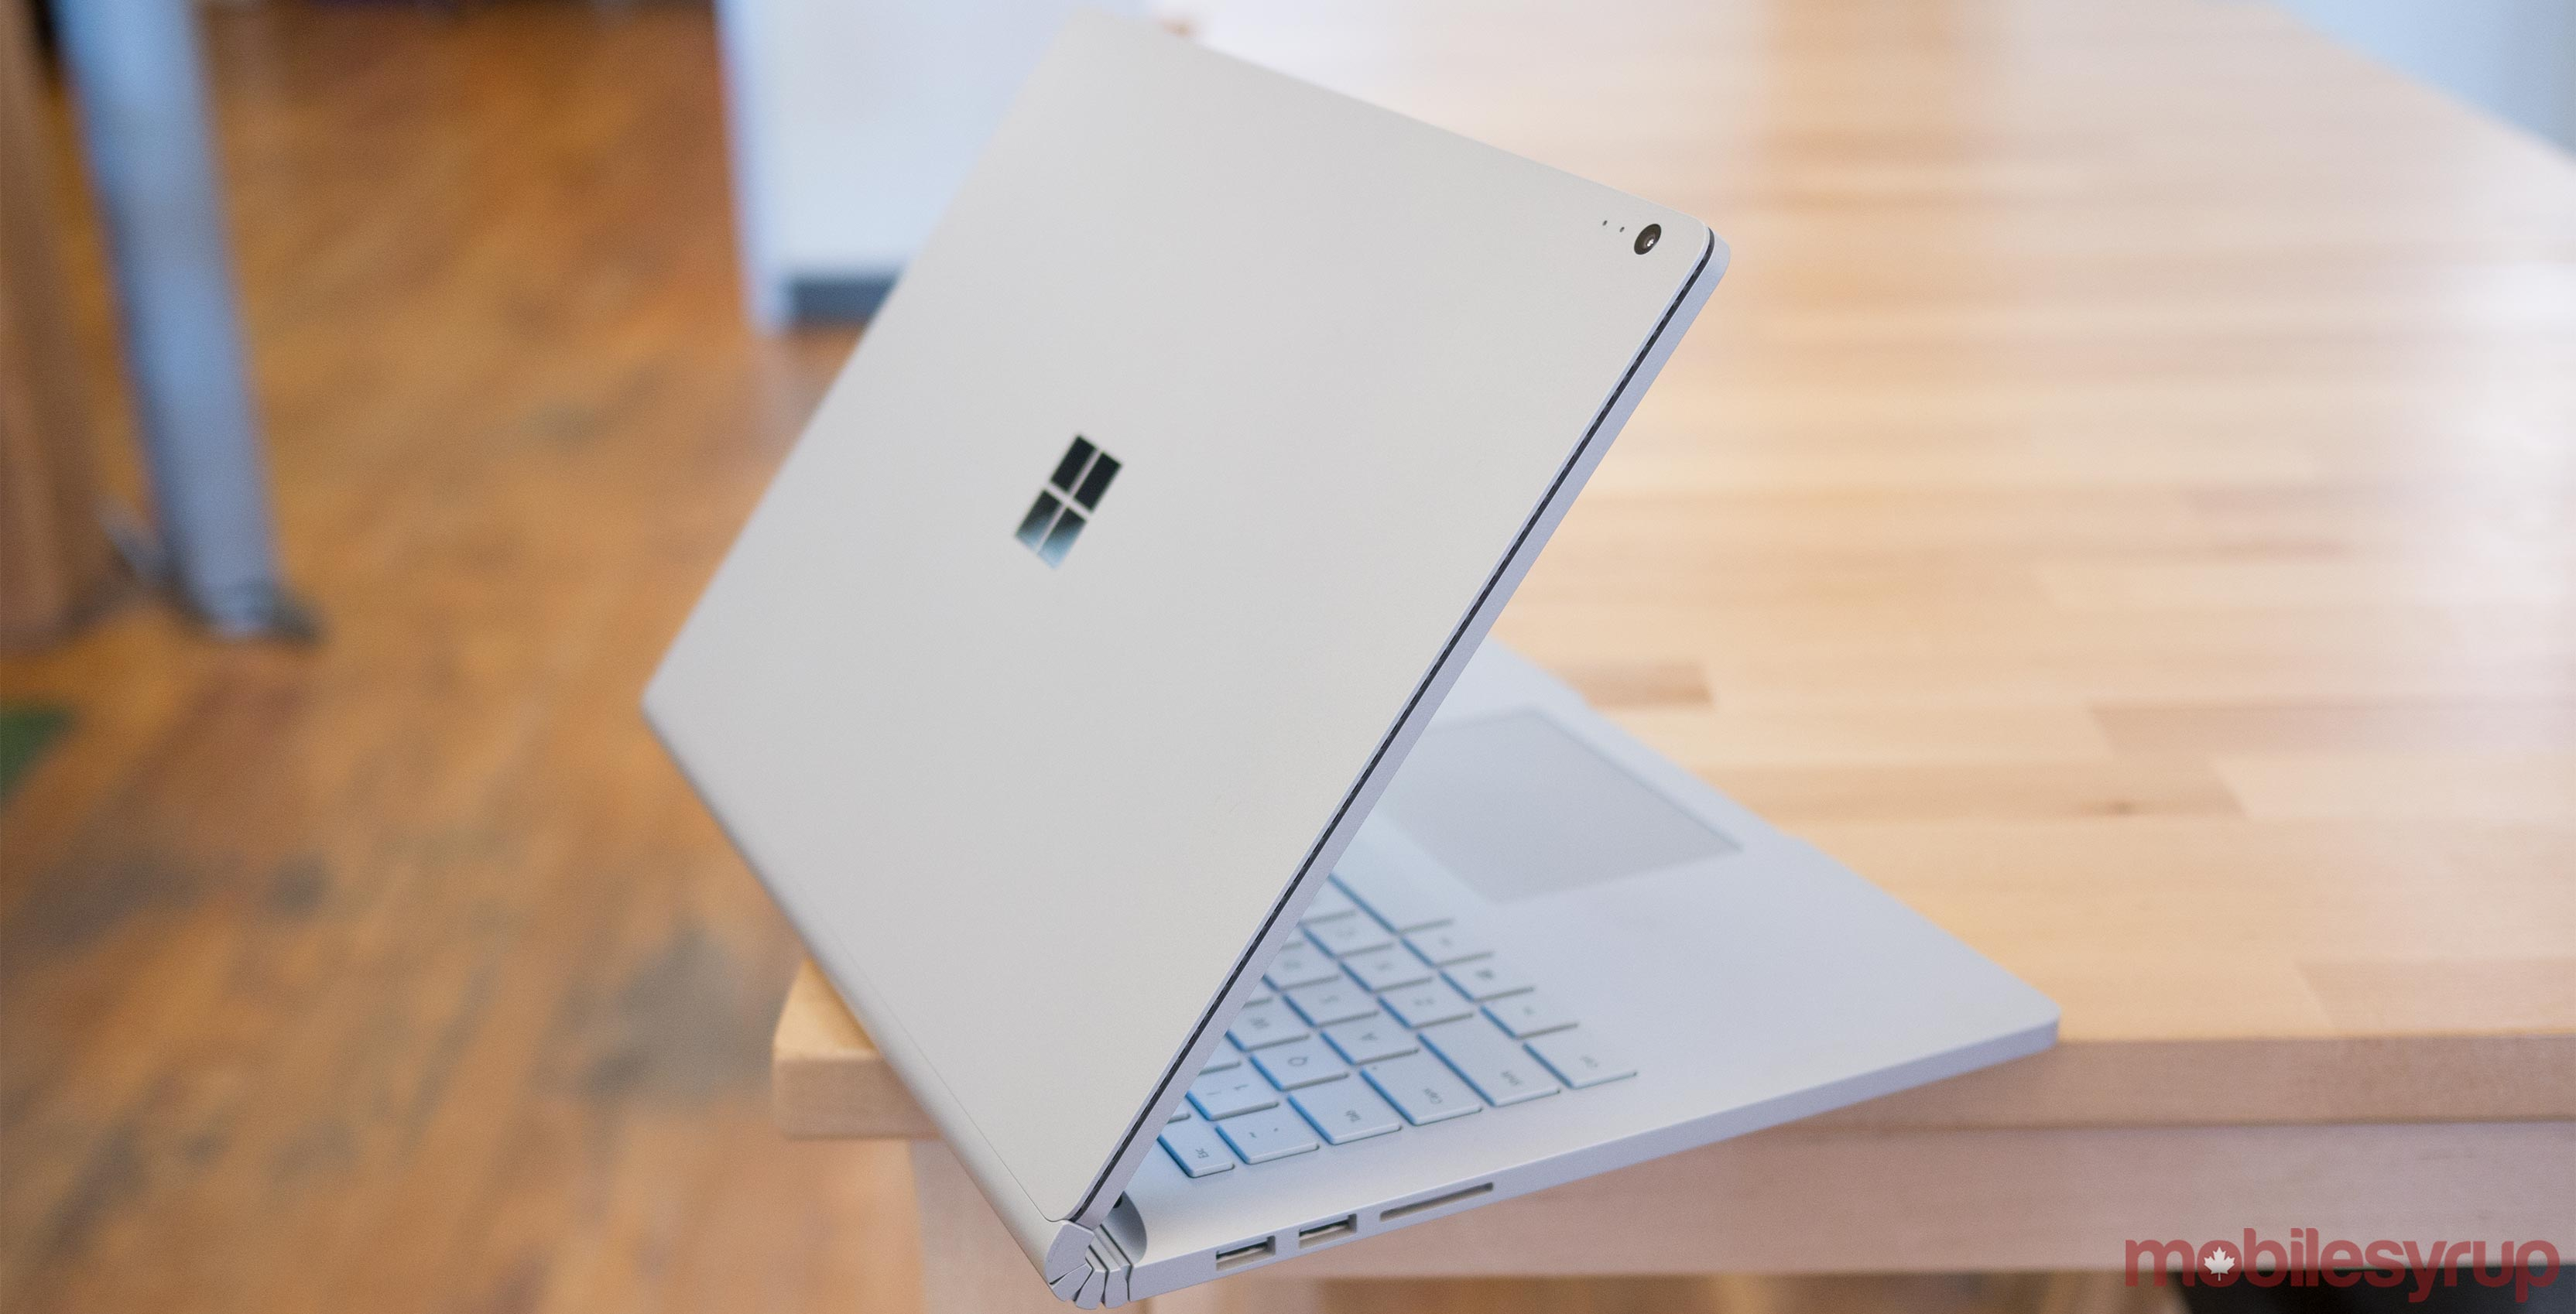 The Surface Book 2 is finally in India